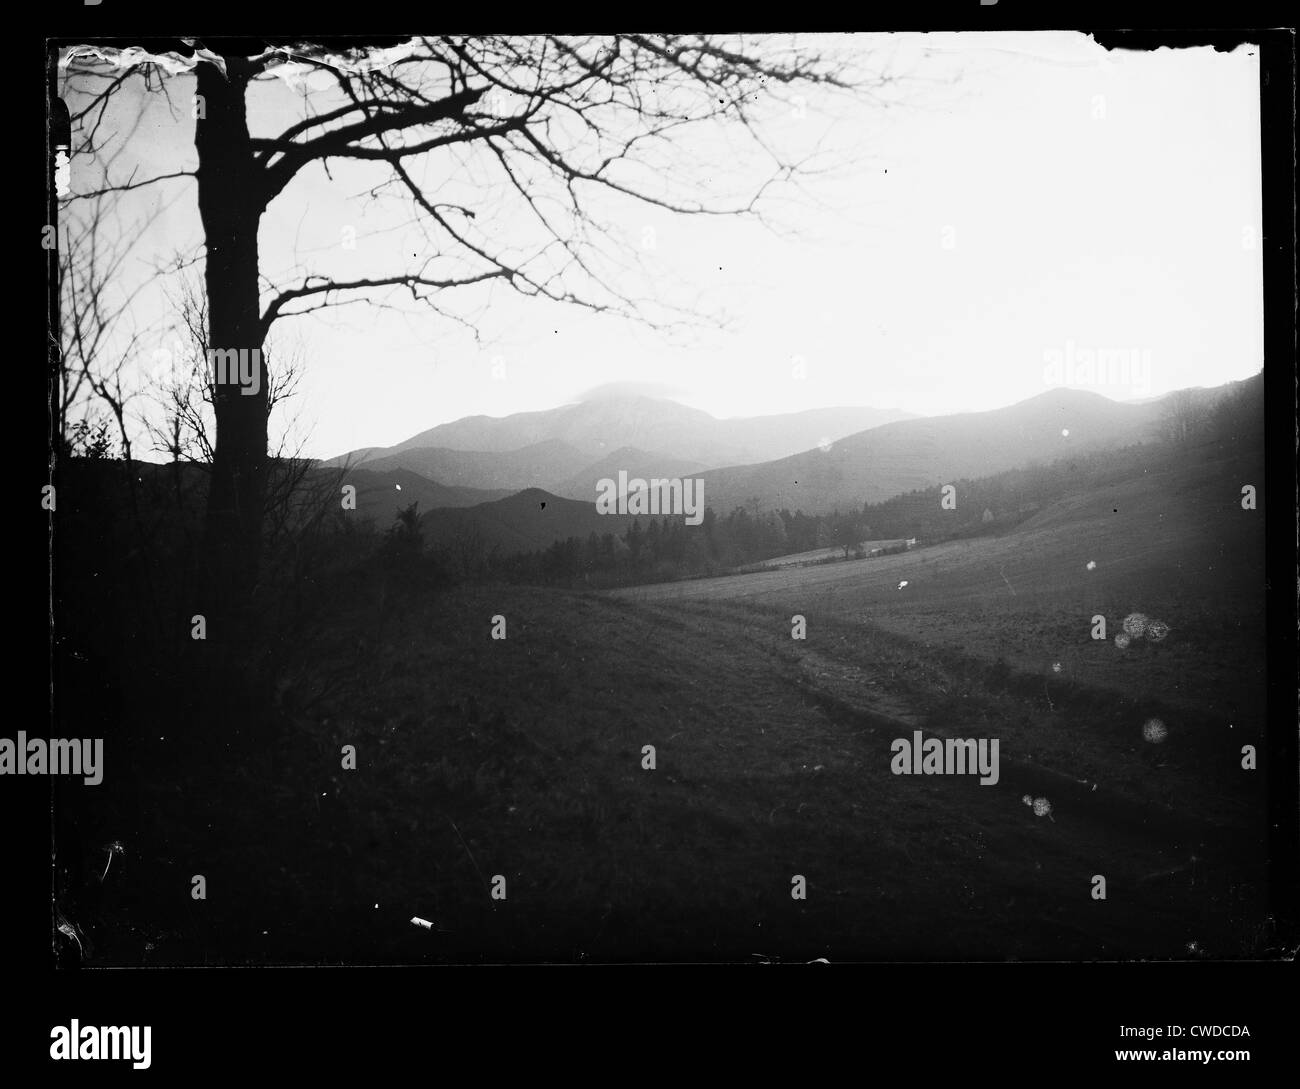 backlighting,meadow,mountains,historical photo - Stock Image